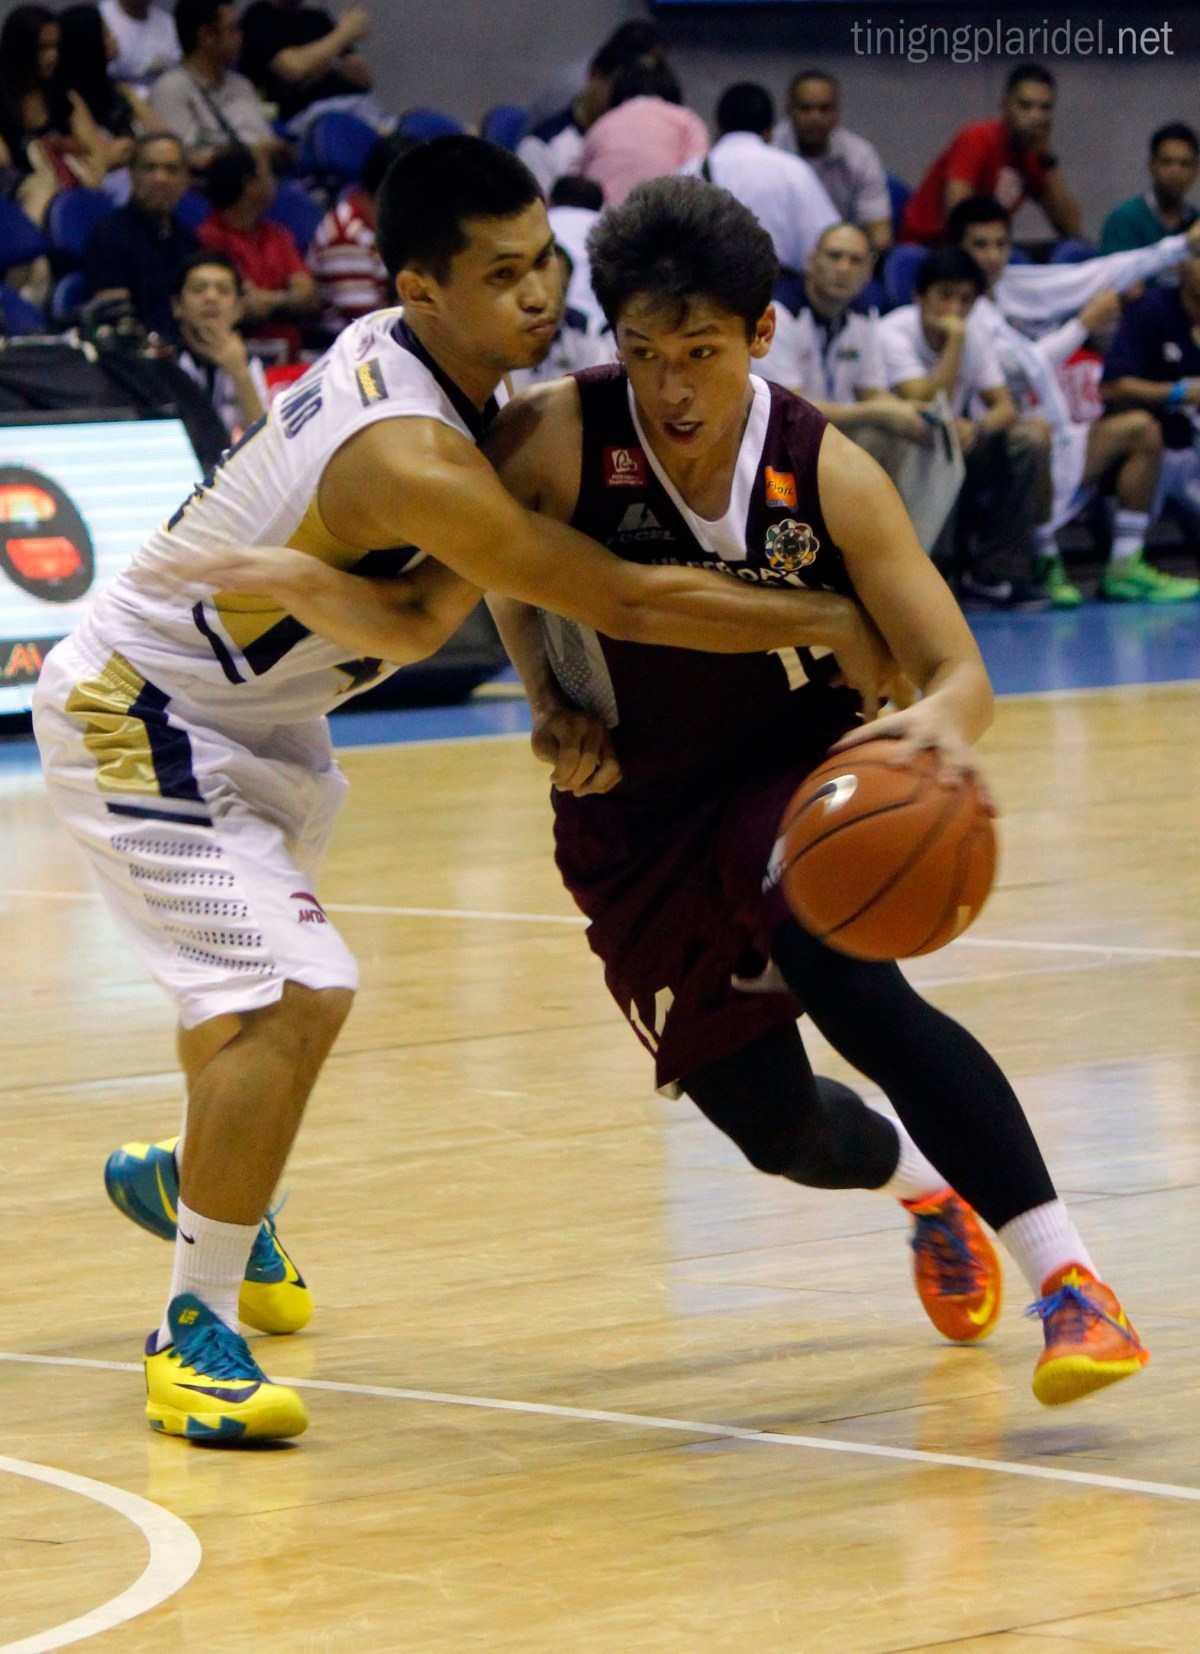 Maroons suffer 11th loss to Bulldogs